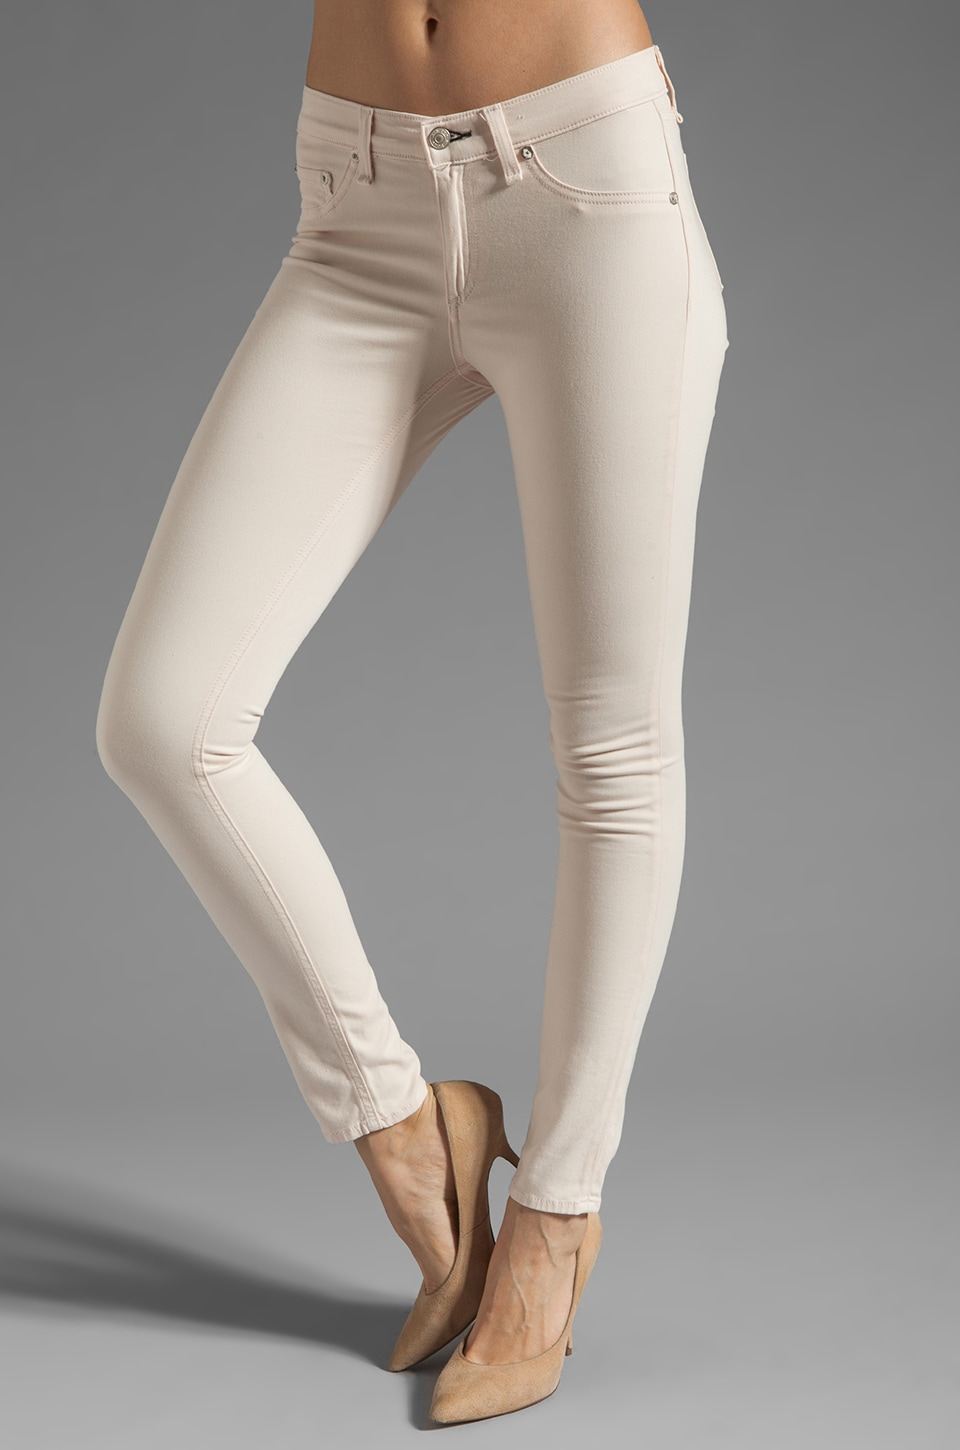 rag & bone/JEAN Legging in Magnolia